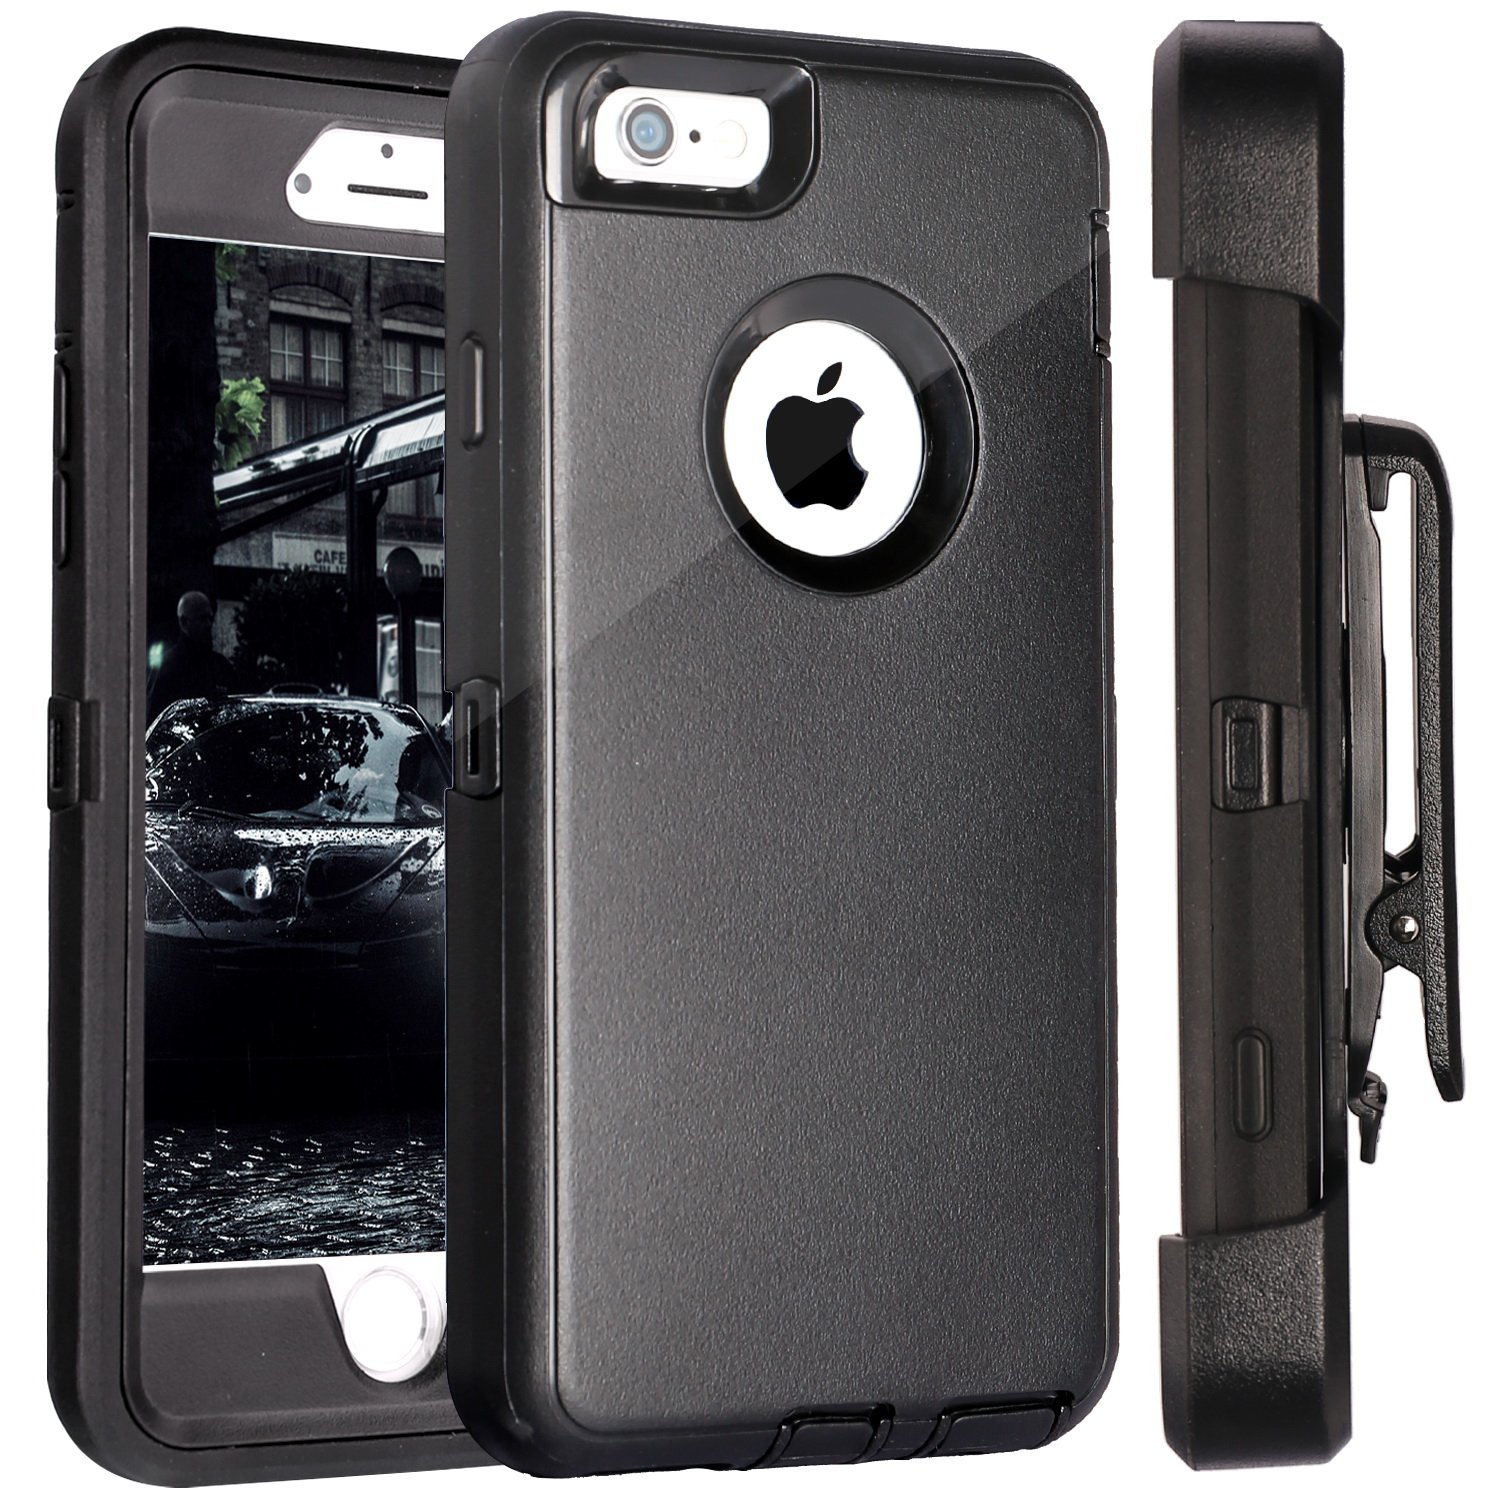 FOGEEK iPhone 6S Plus Case, Protective Case Heavy Duty Cover Compatible for iPhone 6 Plus & iPhone 6S Plus 5.5 inch 360 Degree Rotary Belt Clip & Kickstand (Black) by FOGEEK